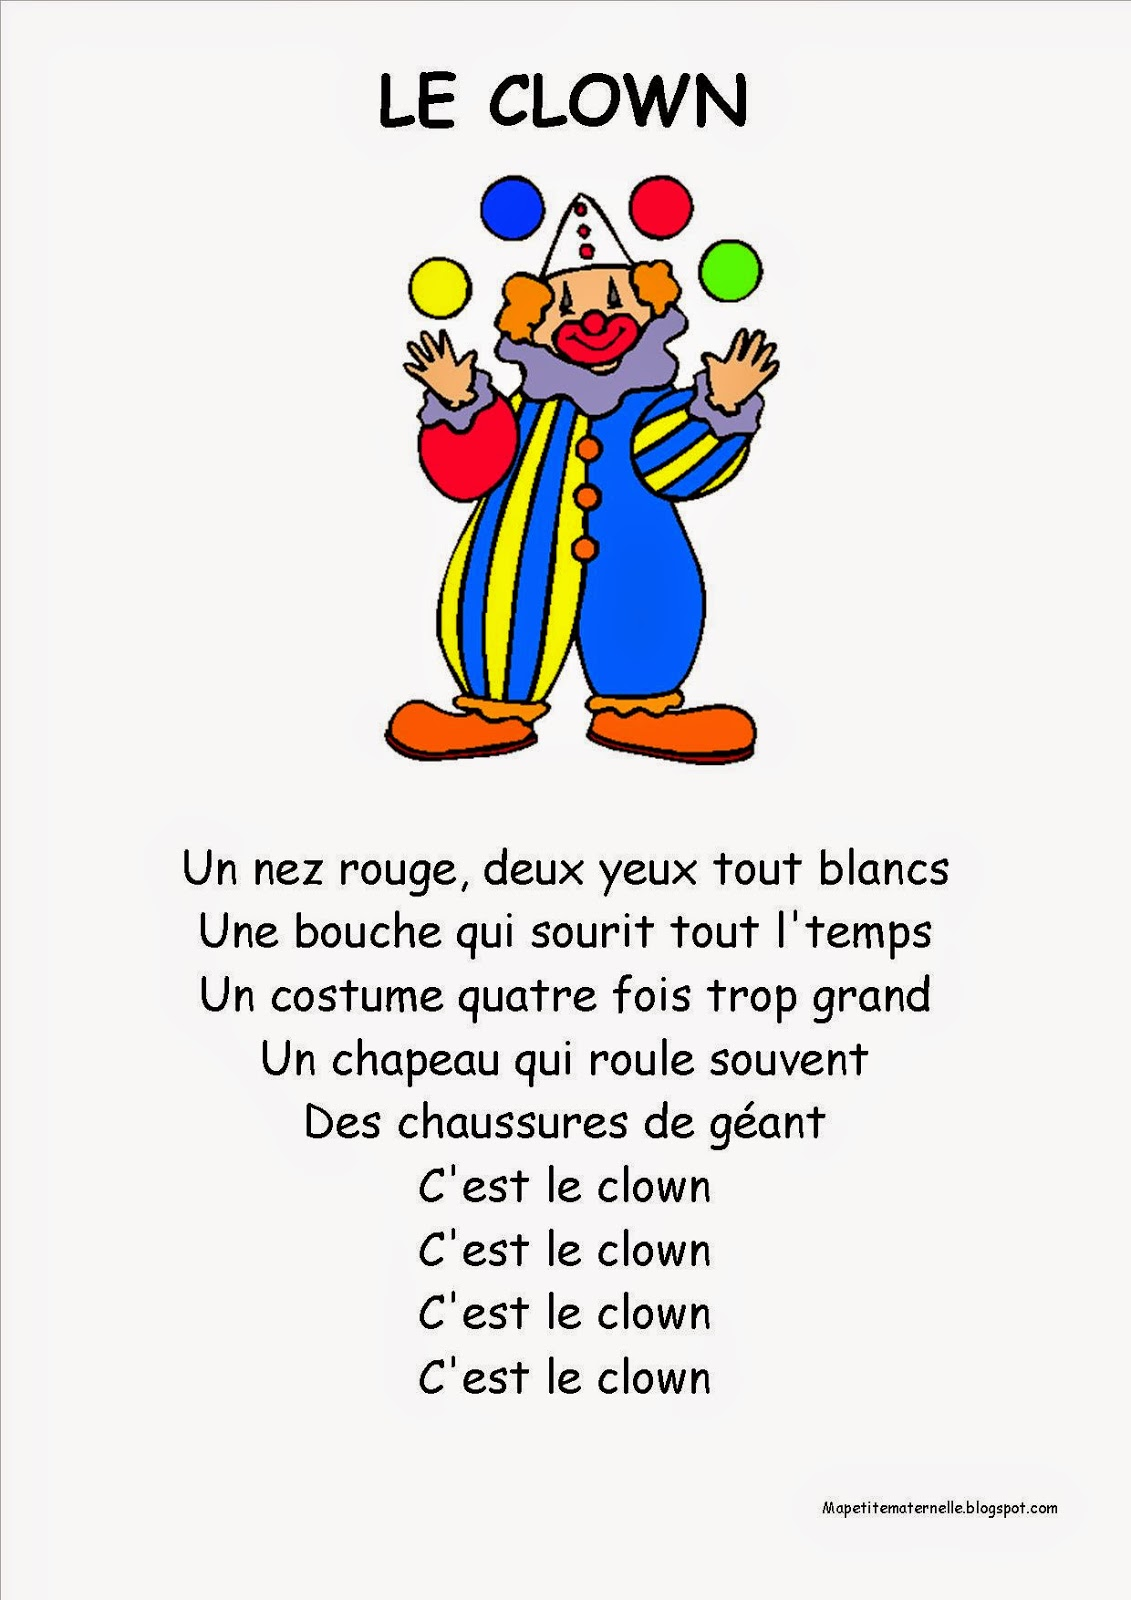 Le clown chanson PS